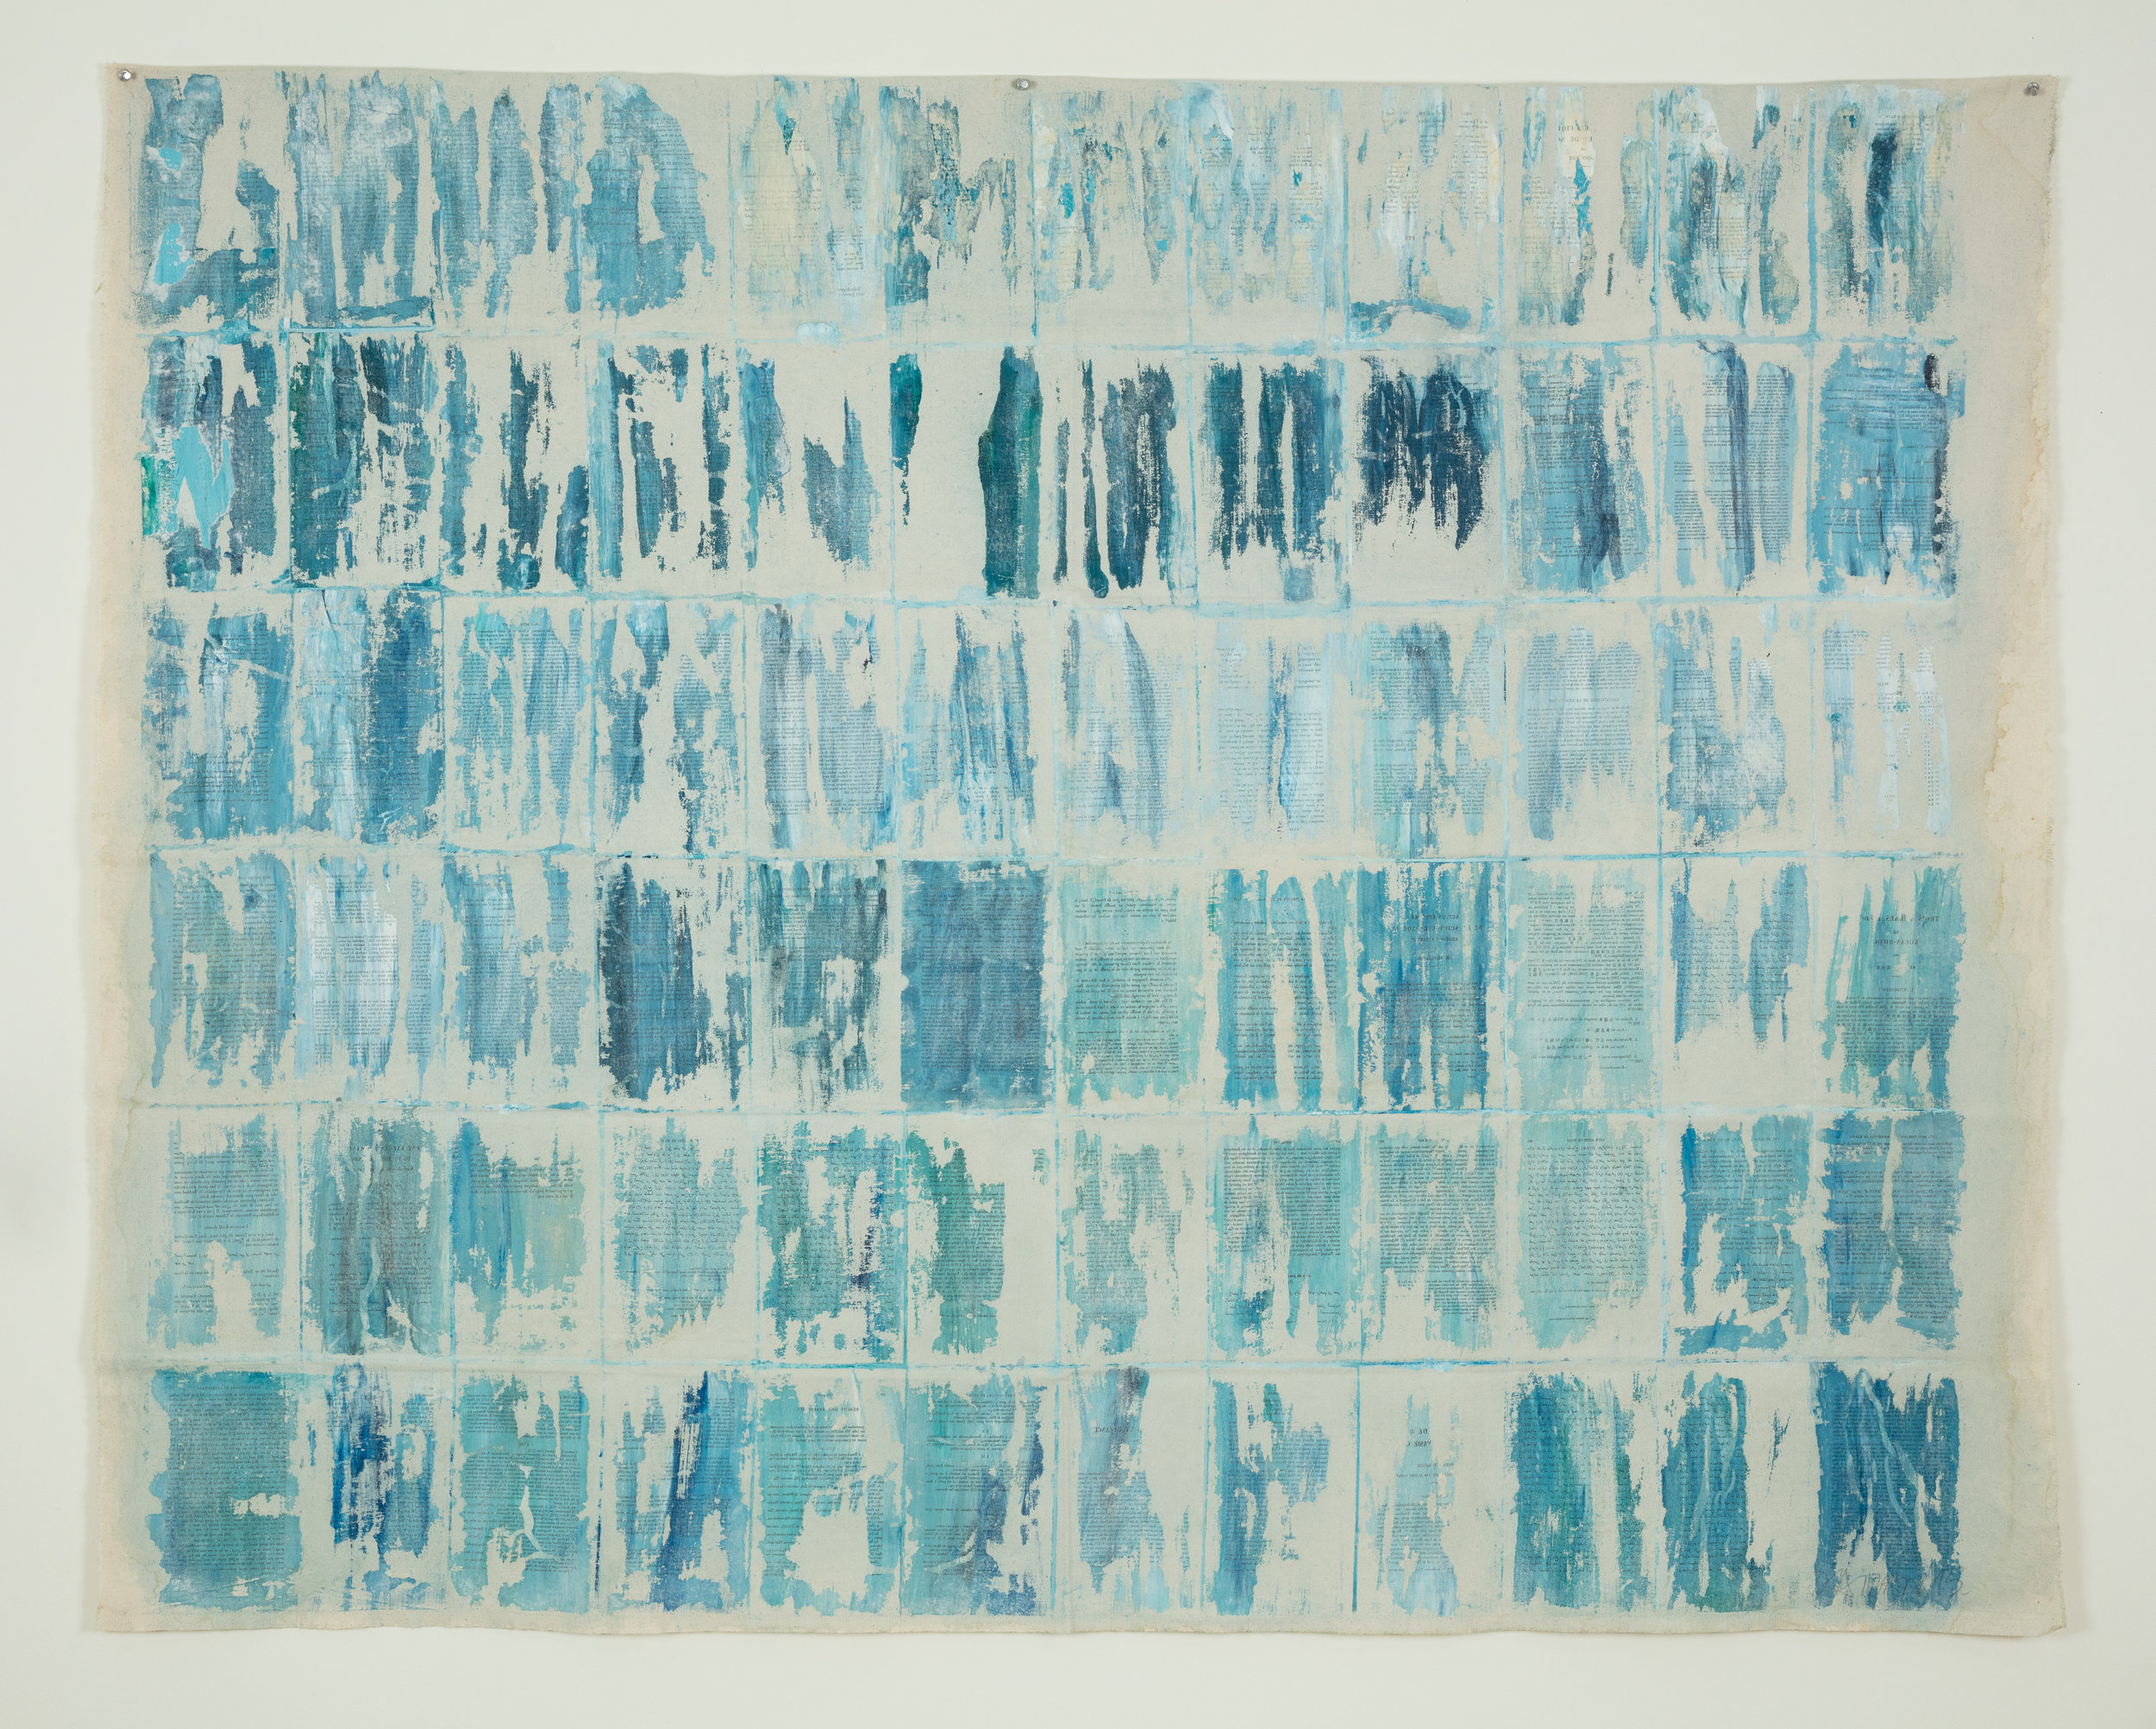 uncharted territory 5, 2015. Printed papers and acrylic on canvas, 138 x 173cm